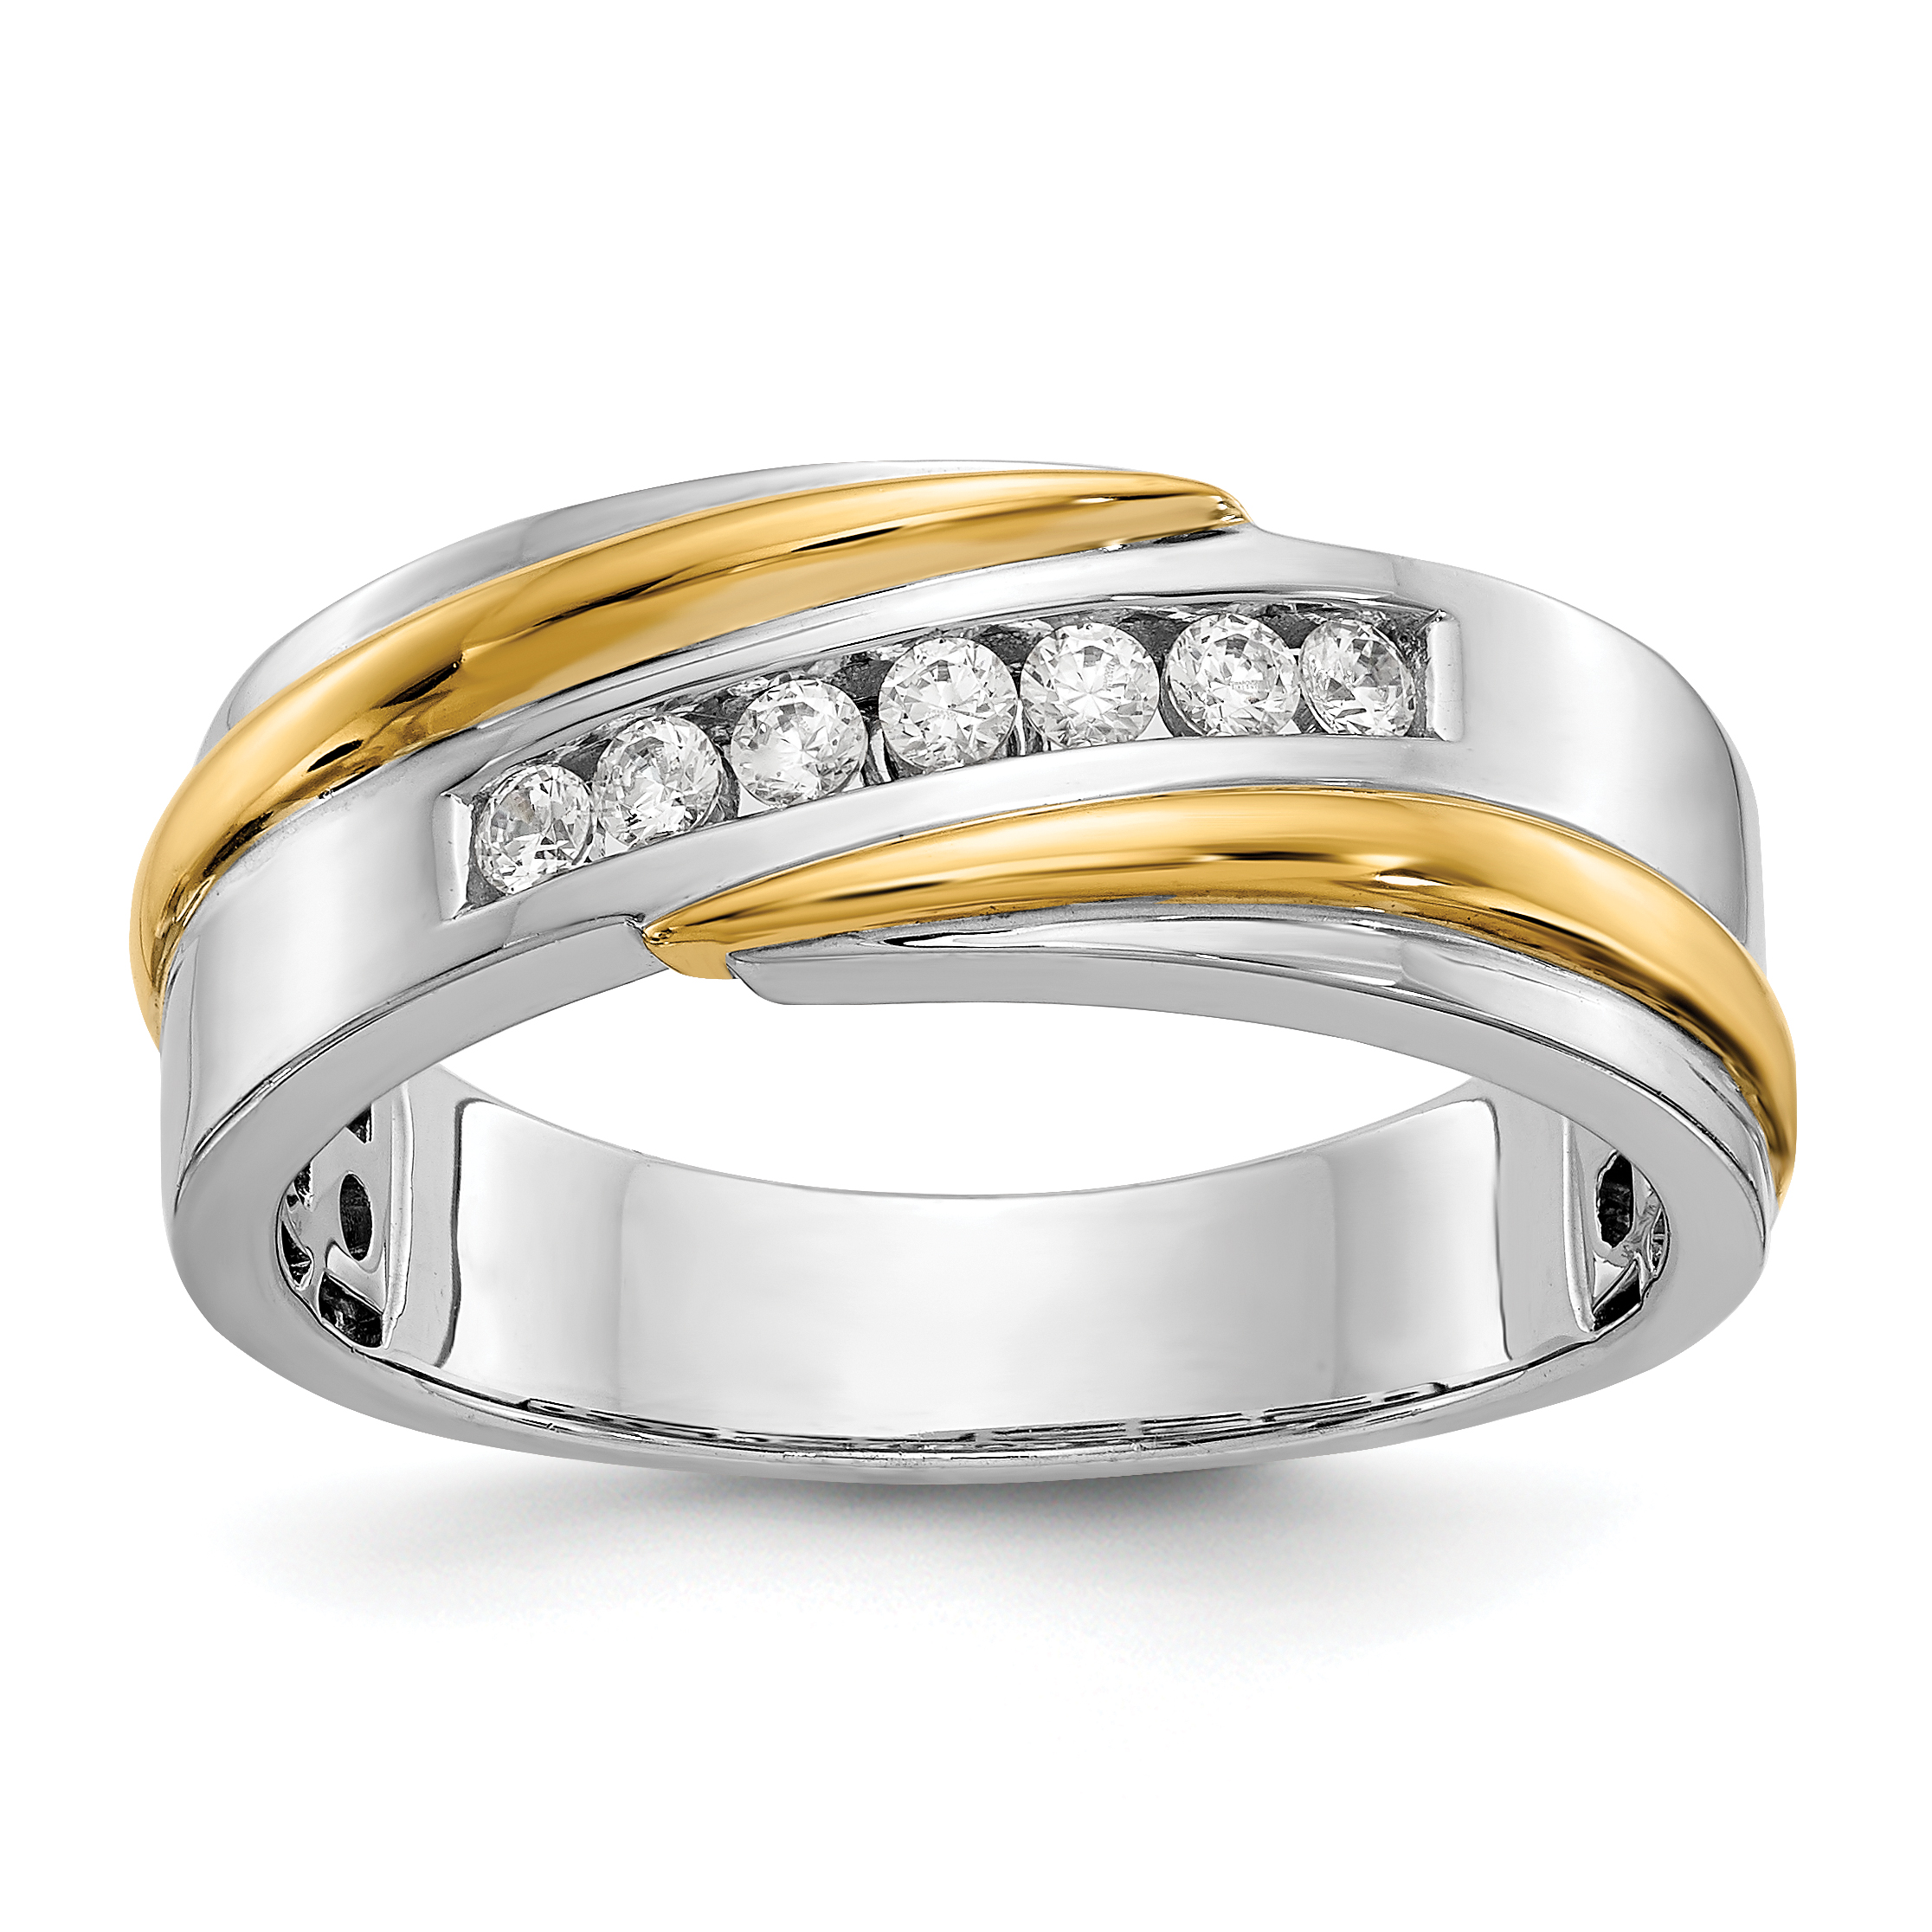 design an wedding bands band this seven pin uncompromising tone two and with ibg bold ravishing features